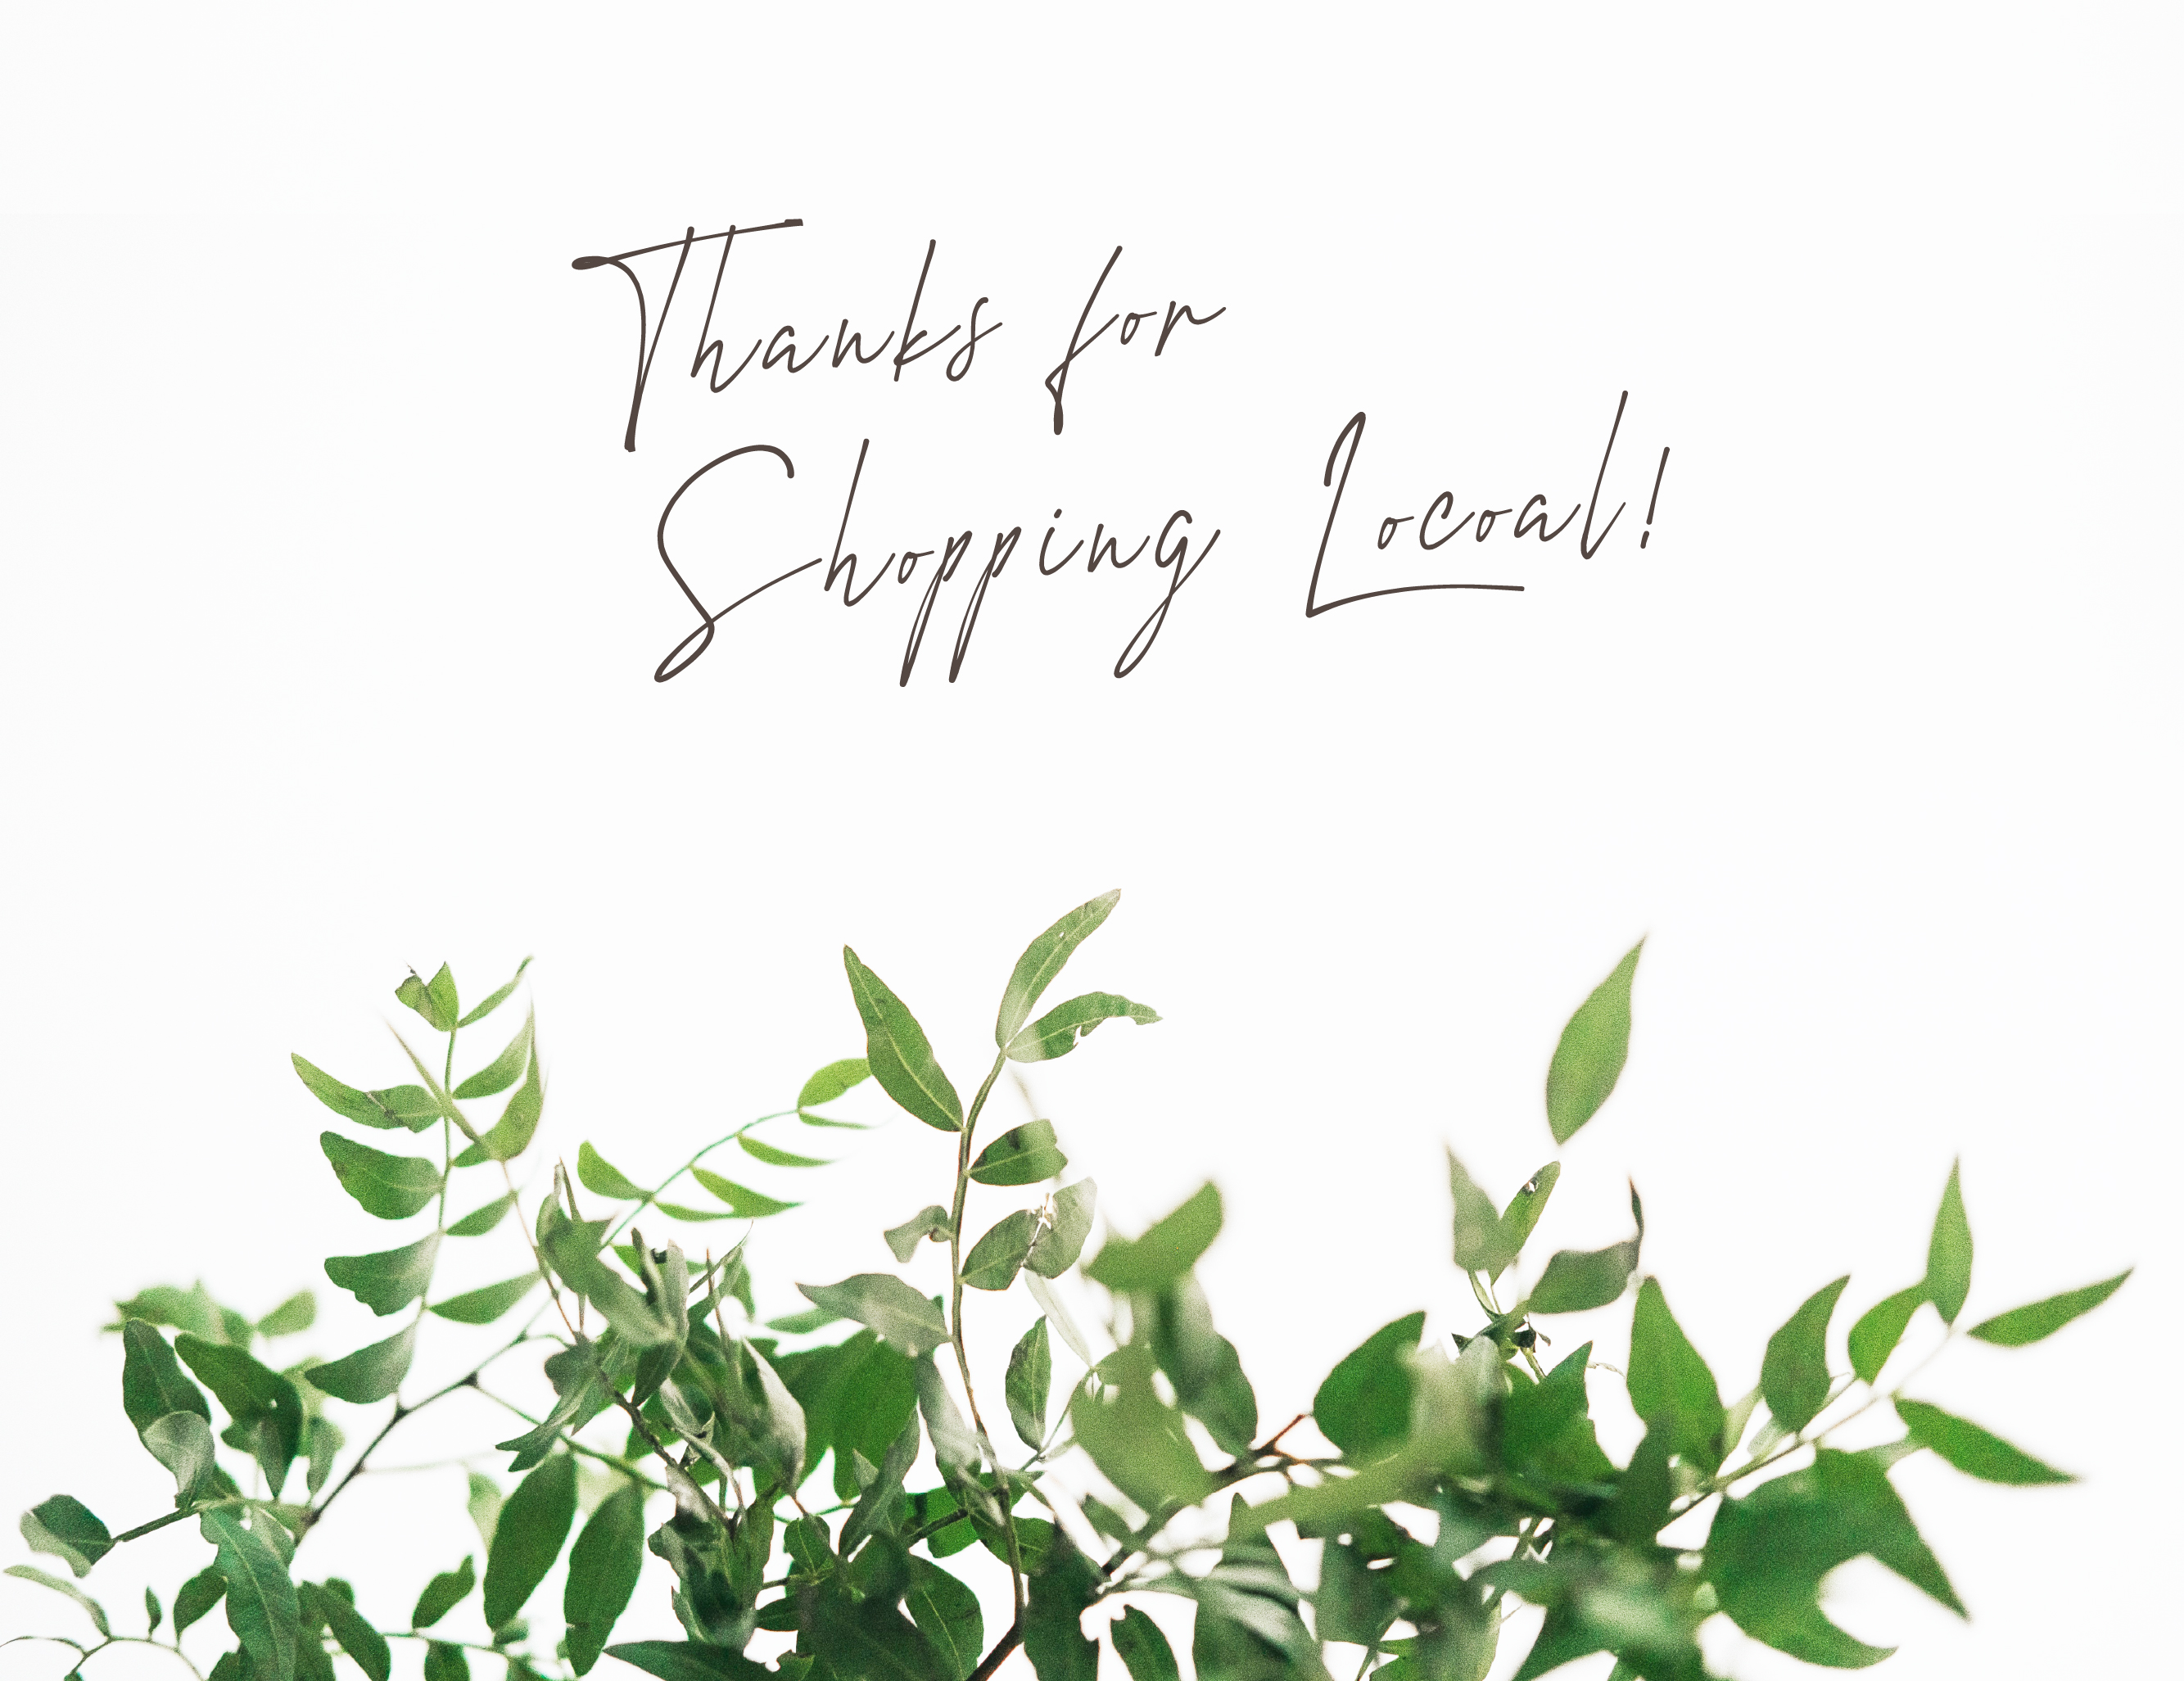 Thanks for shopping local with greenery.